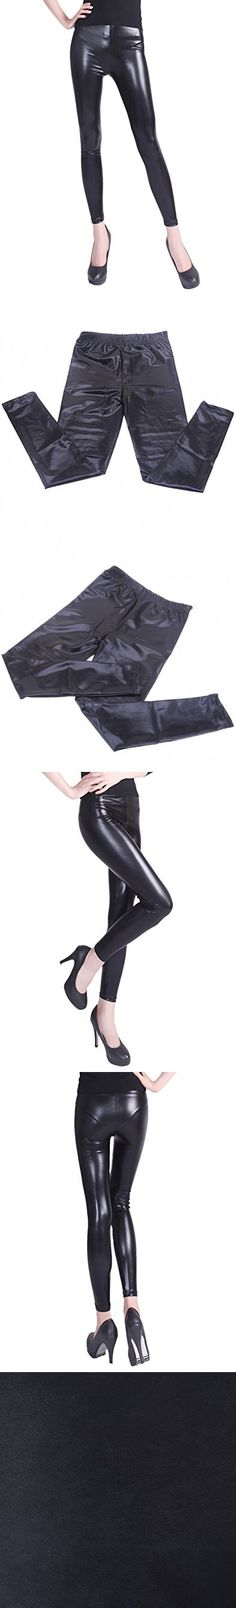 HDE Women's Shiny Leggings Metallic Wet Look Stretch Pants Clubwear (Black, XX-Large)